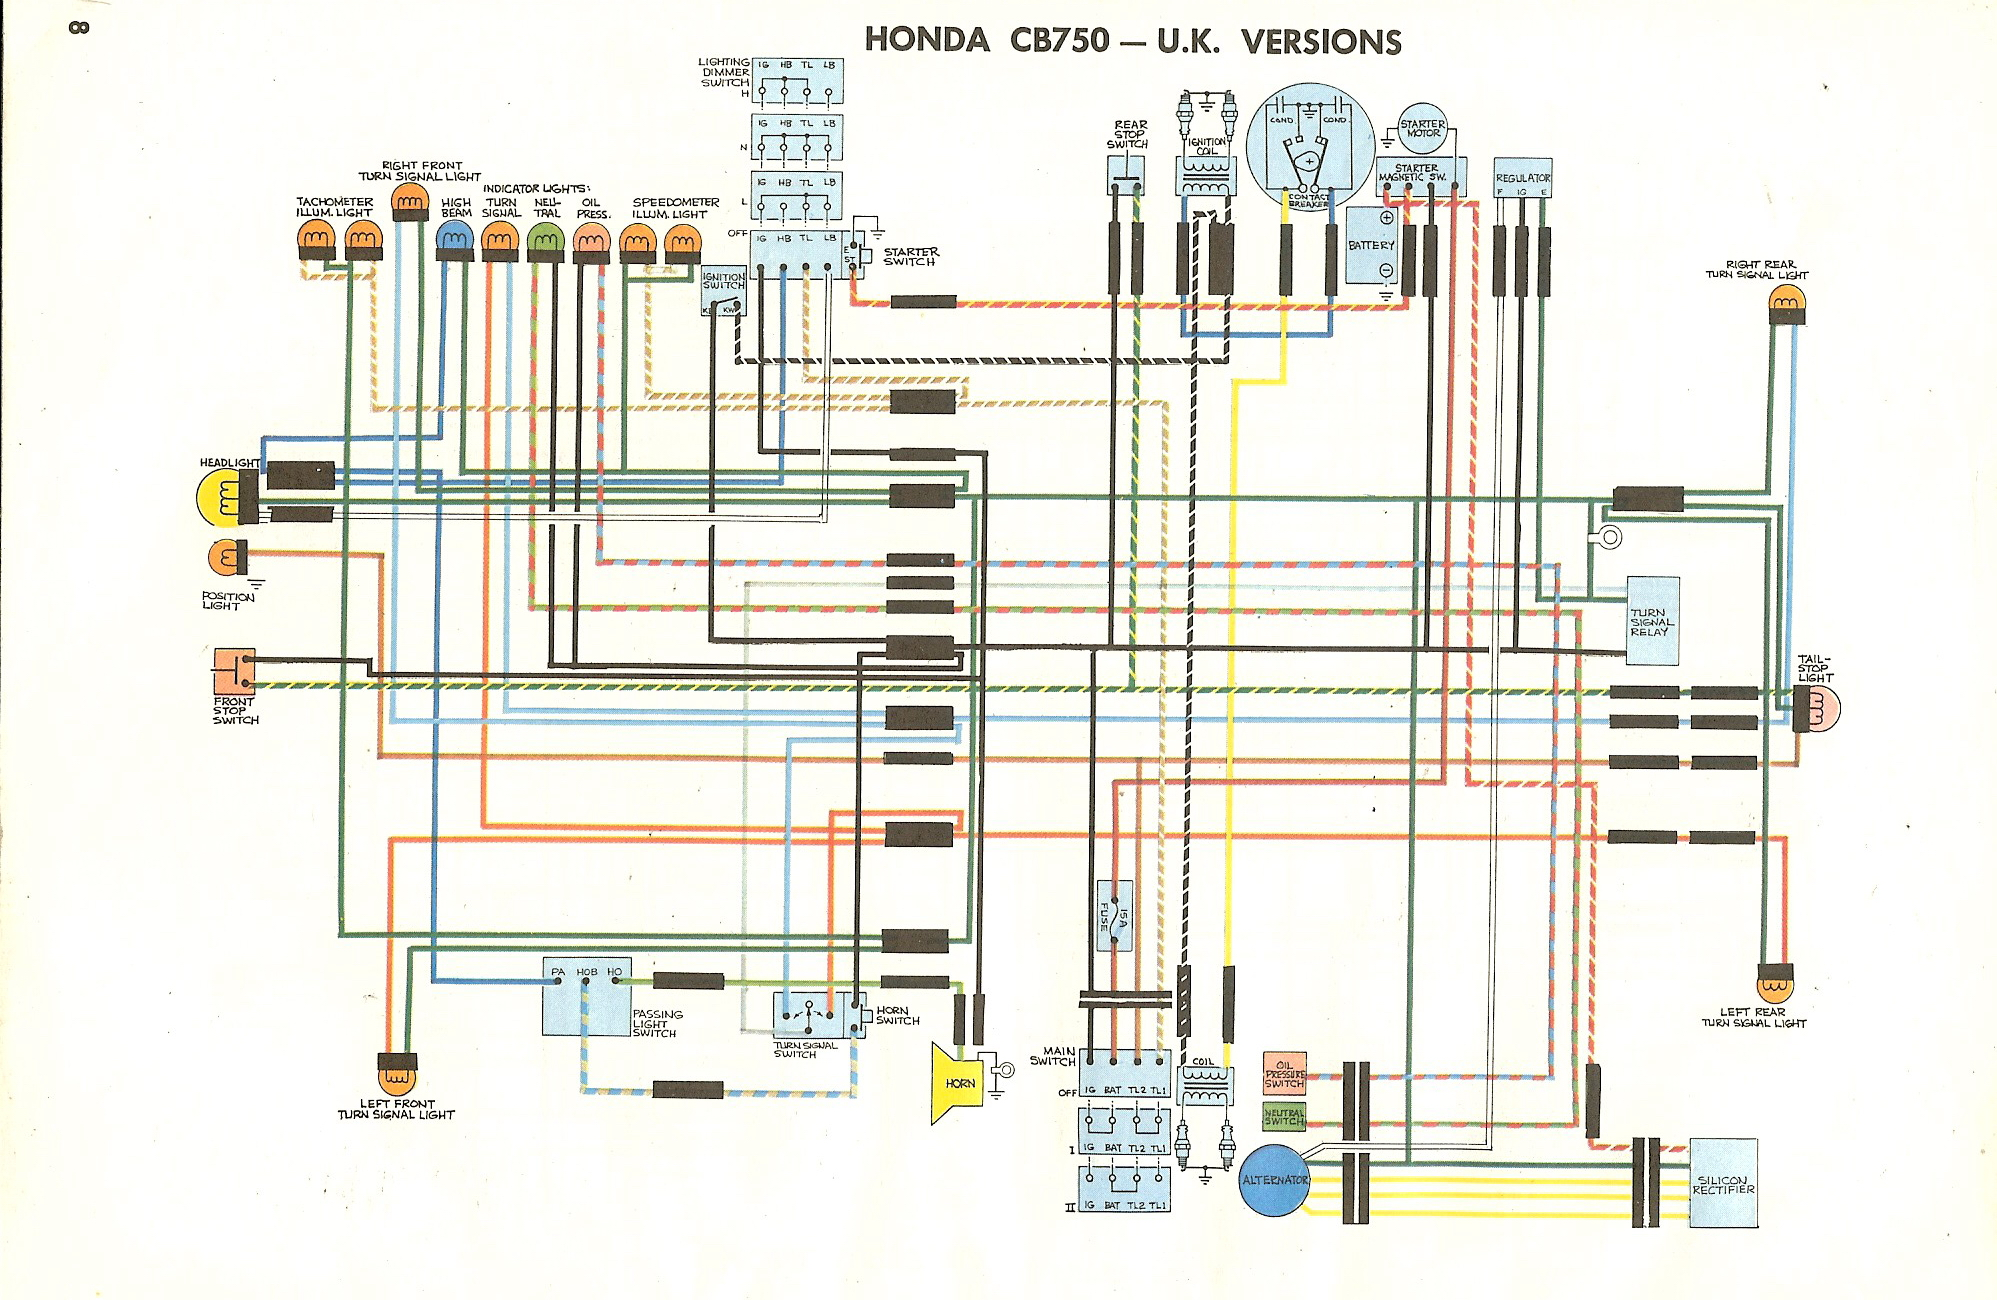 WD750UK 1978 honda cb750 wiring diagram honda cb 700 ignition wire diagram 1976 cb550f wiring diagram at alyssarenee.co